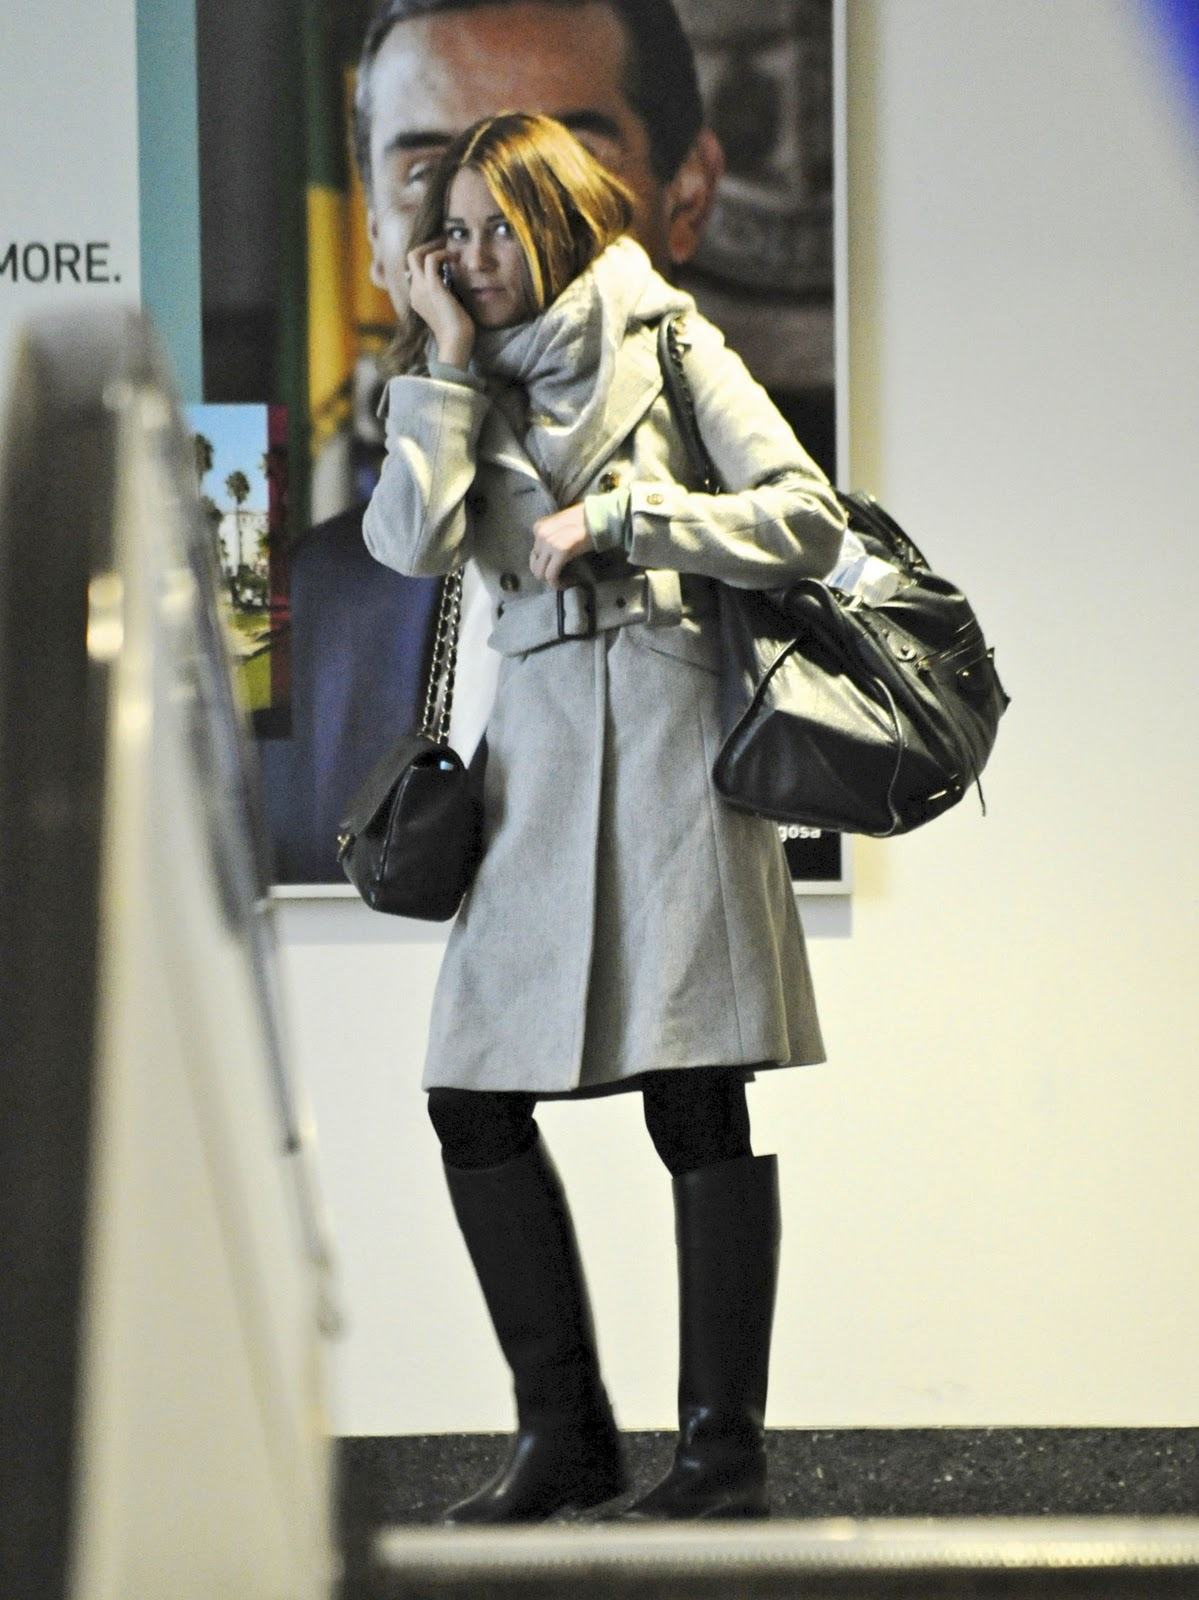 Lauren Conrad Her Life Her Fashion Her Style Lauren Conrad Late Night At Lax Are The Dark